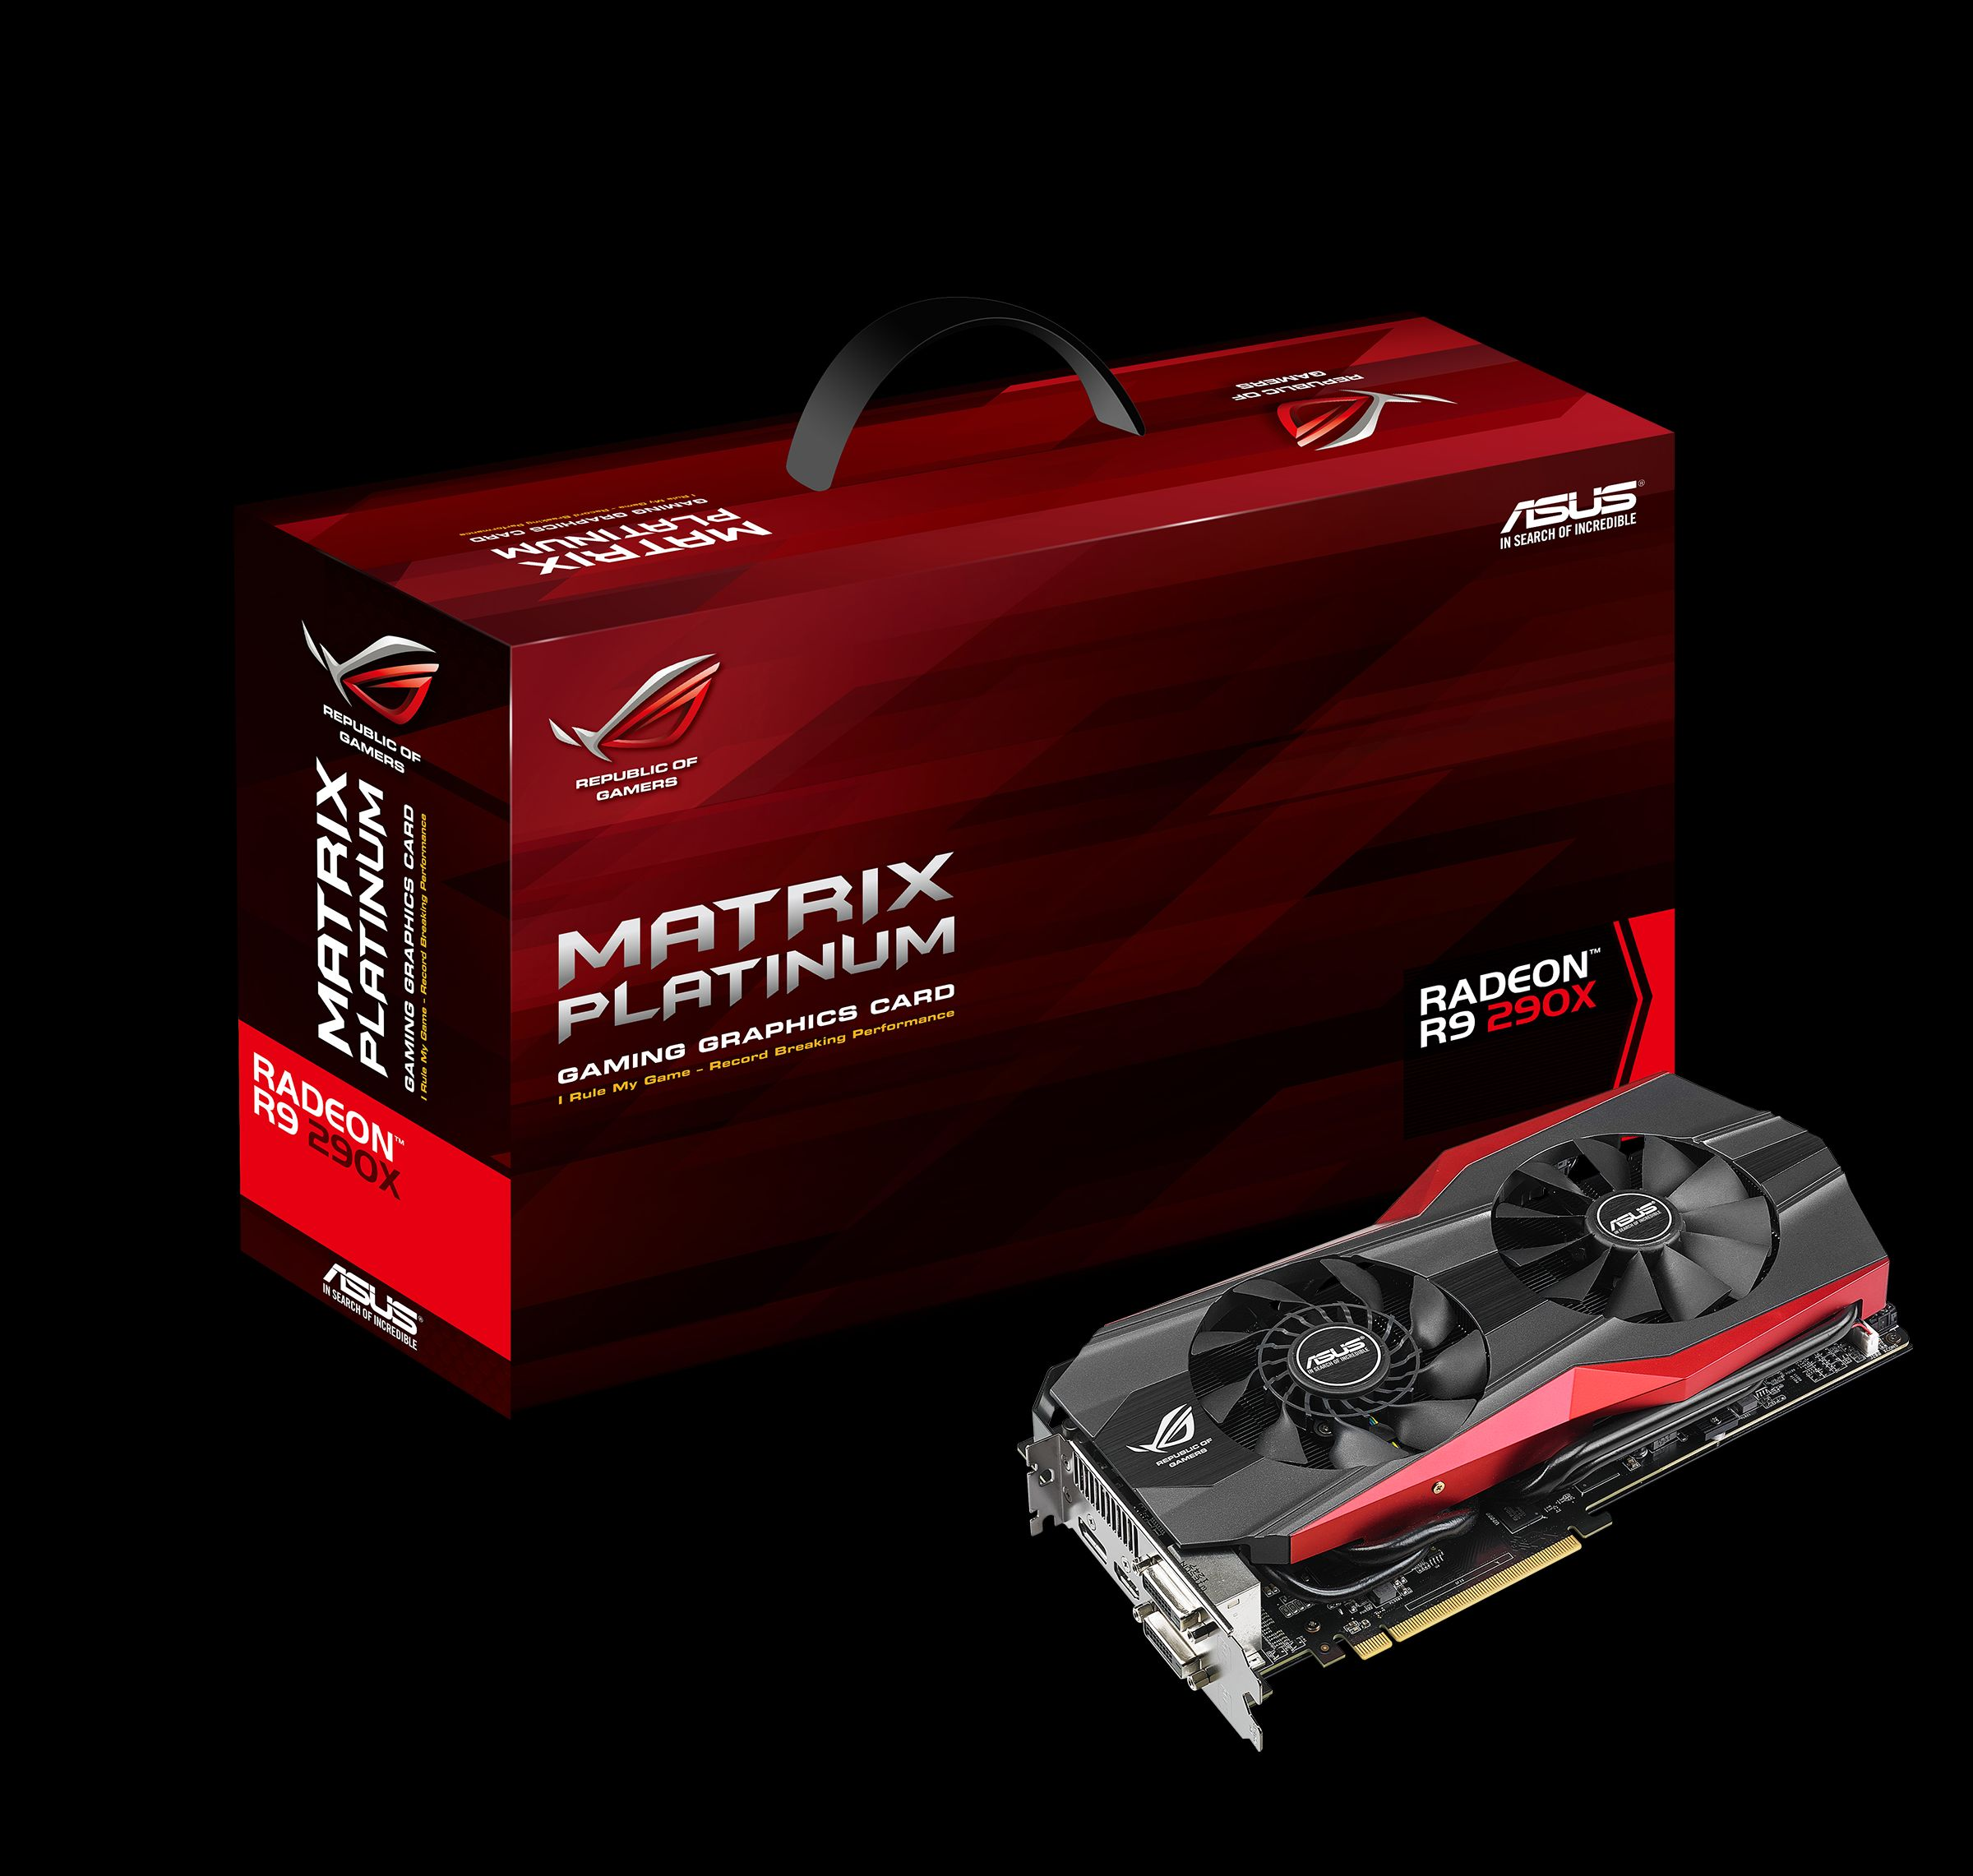 ASUS India announces Matrix R9 290X and GTX 780 Ti Graphics Cards.